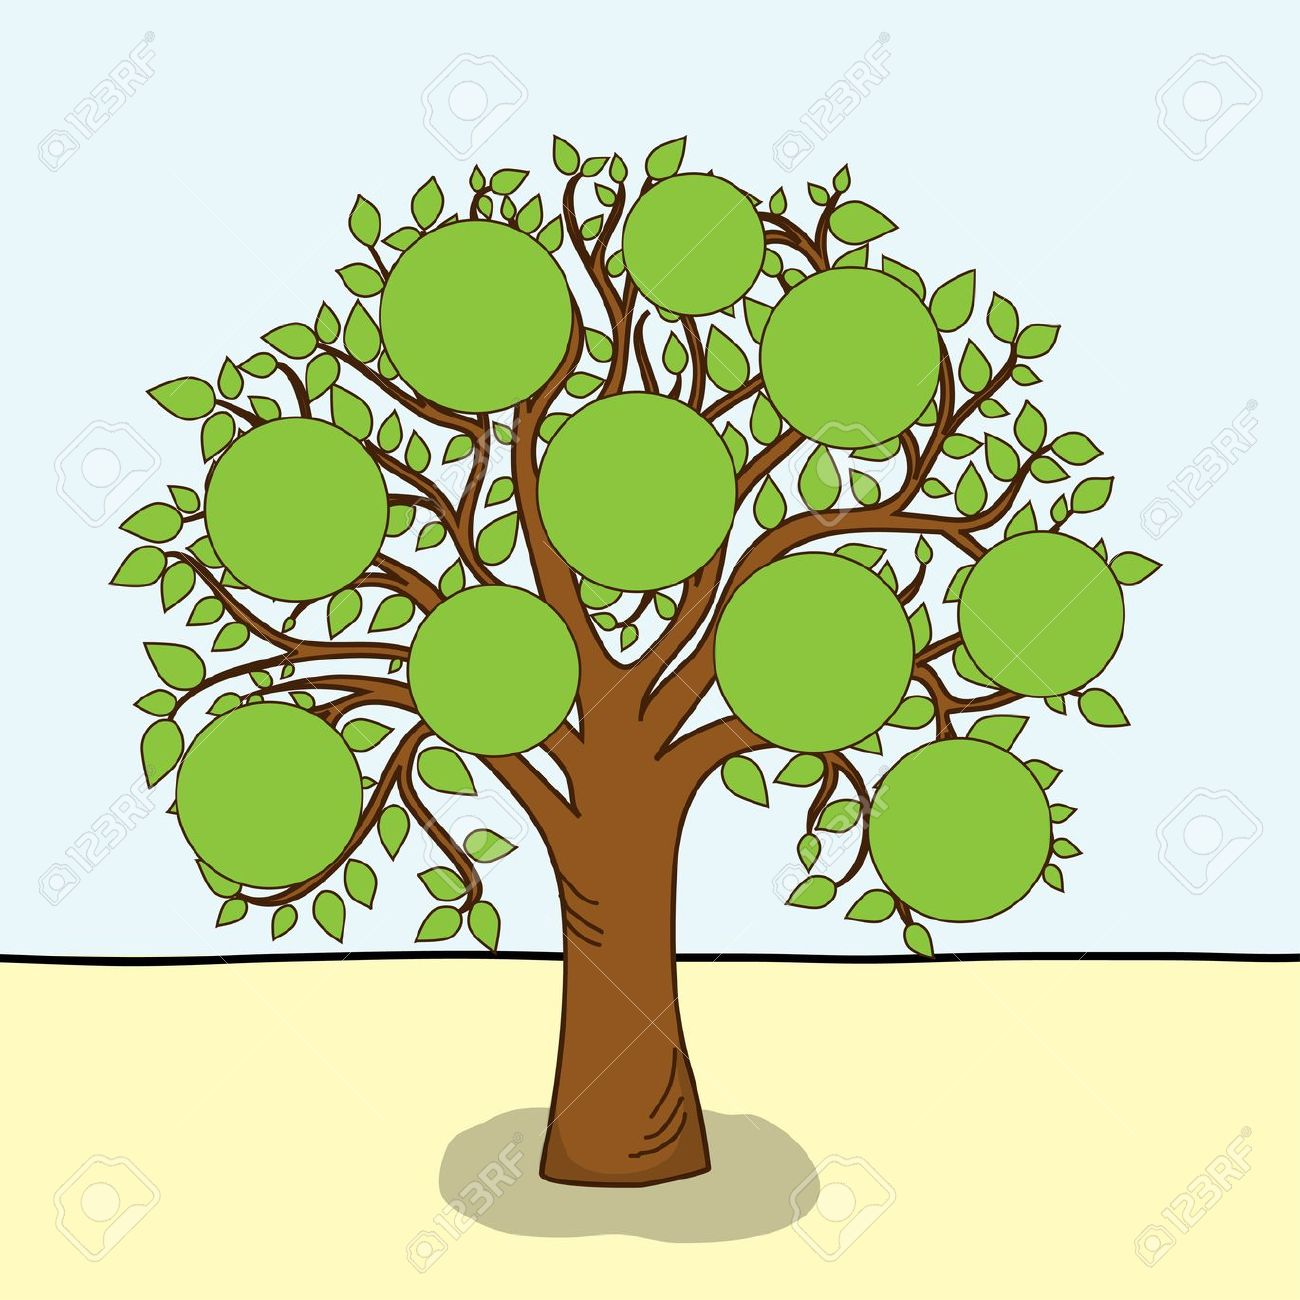 Family tree clipart pictures image transparent library Family tree clipart clipart cliparts for you 2 - Clipartix image transparent library